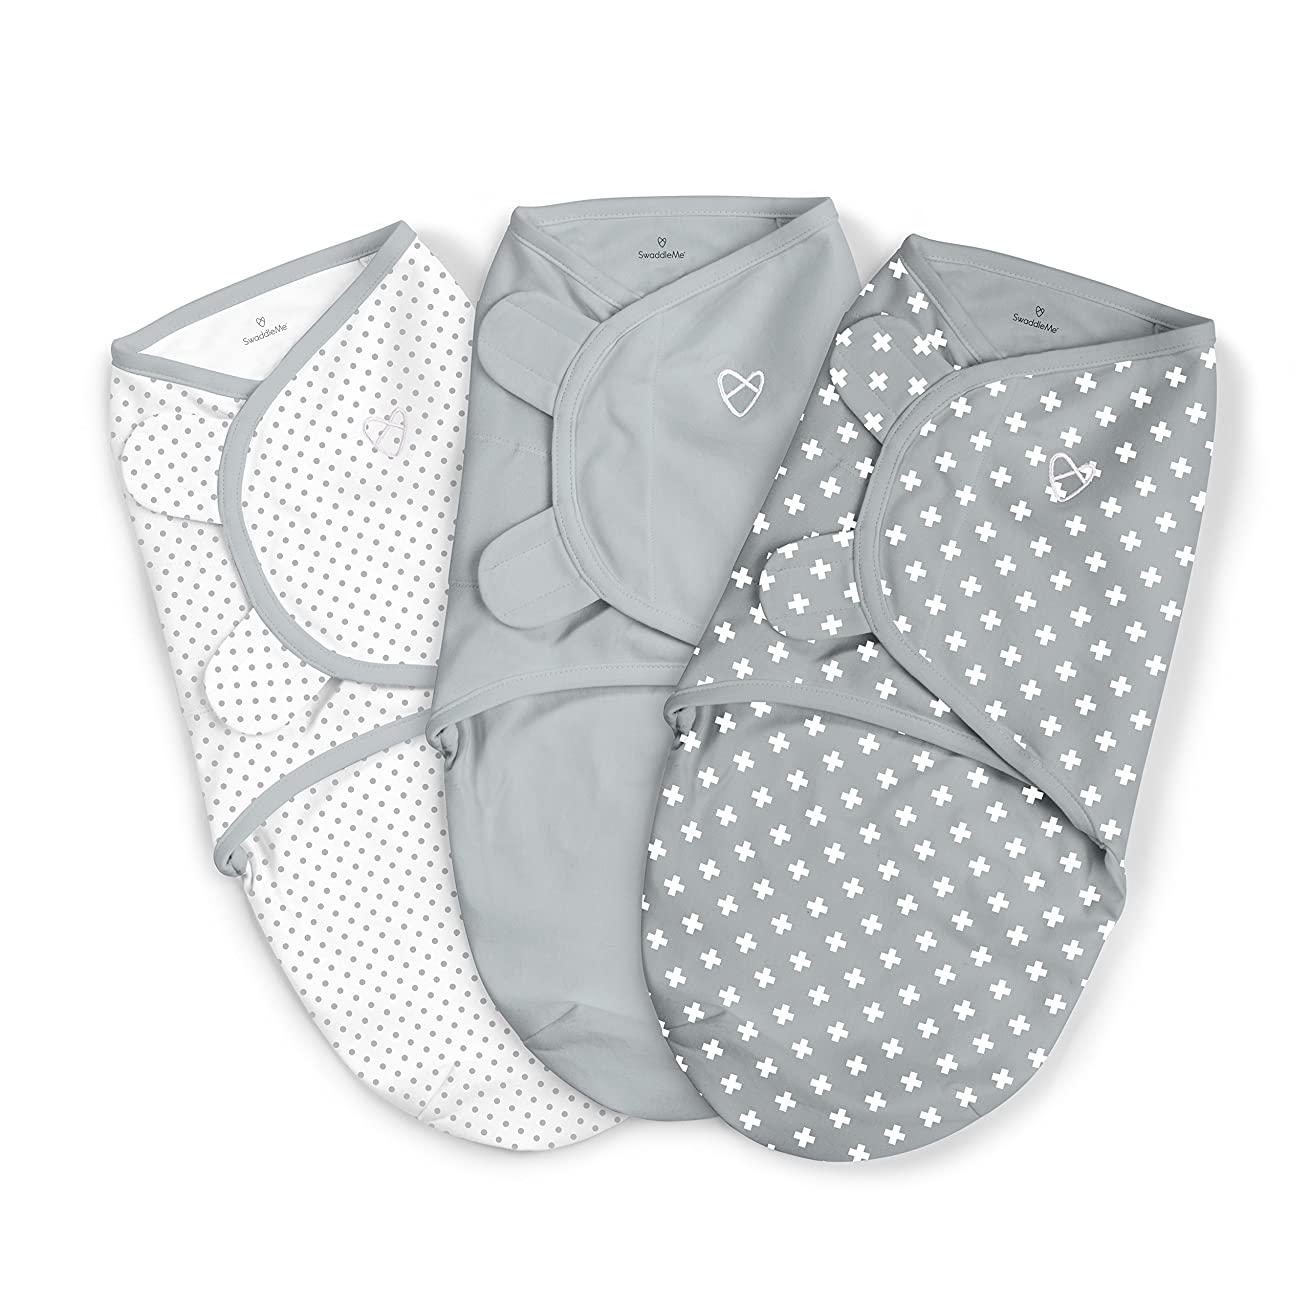 SwaddleMe Original Swaddle 3PK, Criss Cross Polka Dot, Small (0-3 Months, 7-14 lbs)